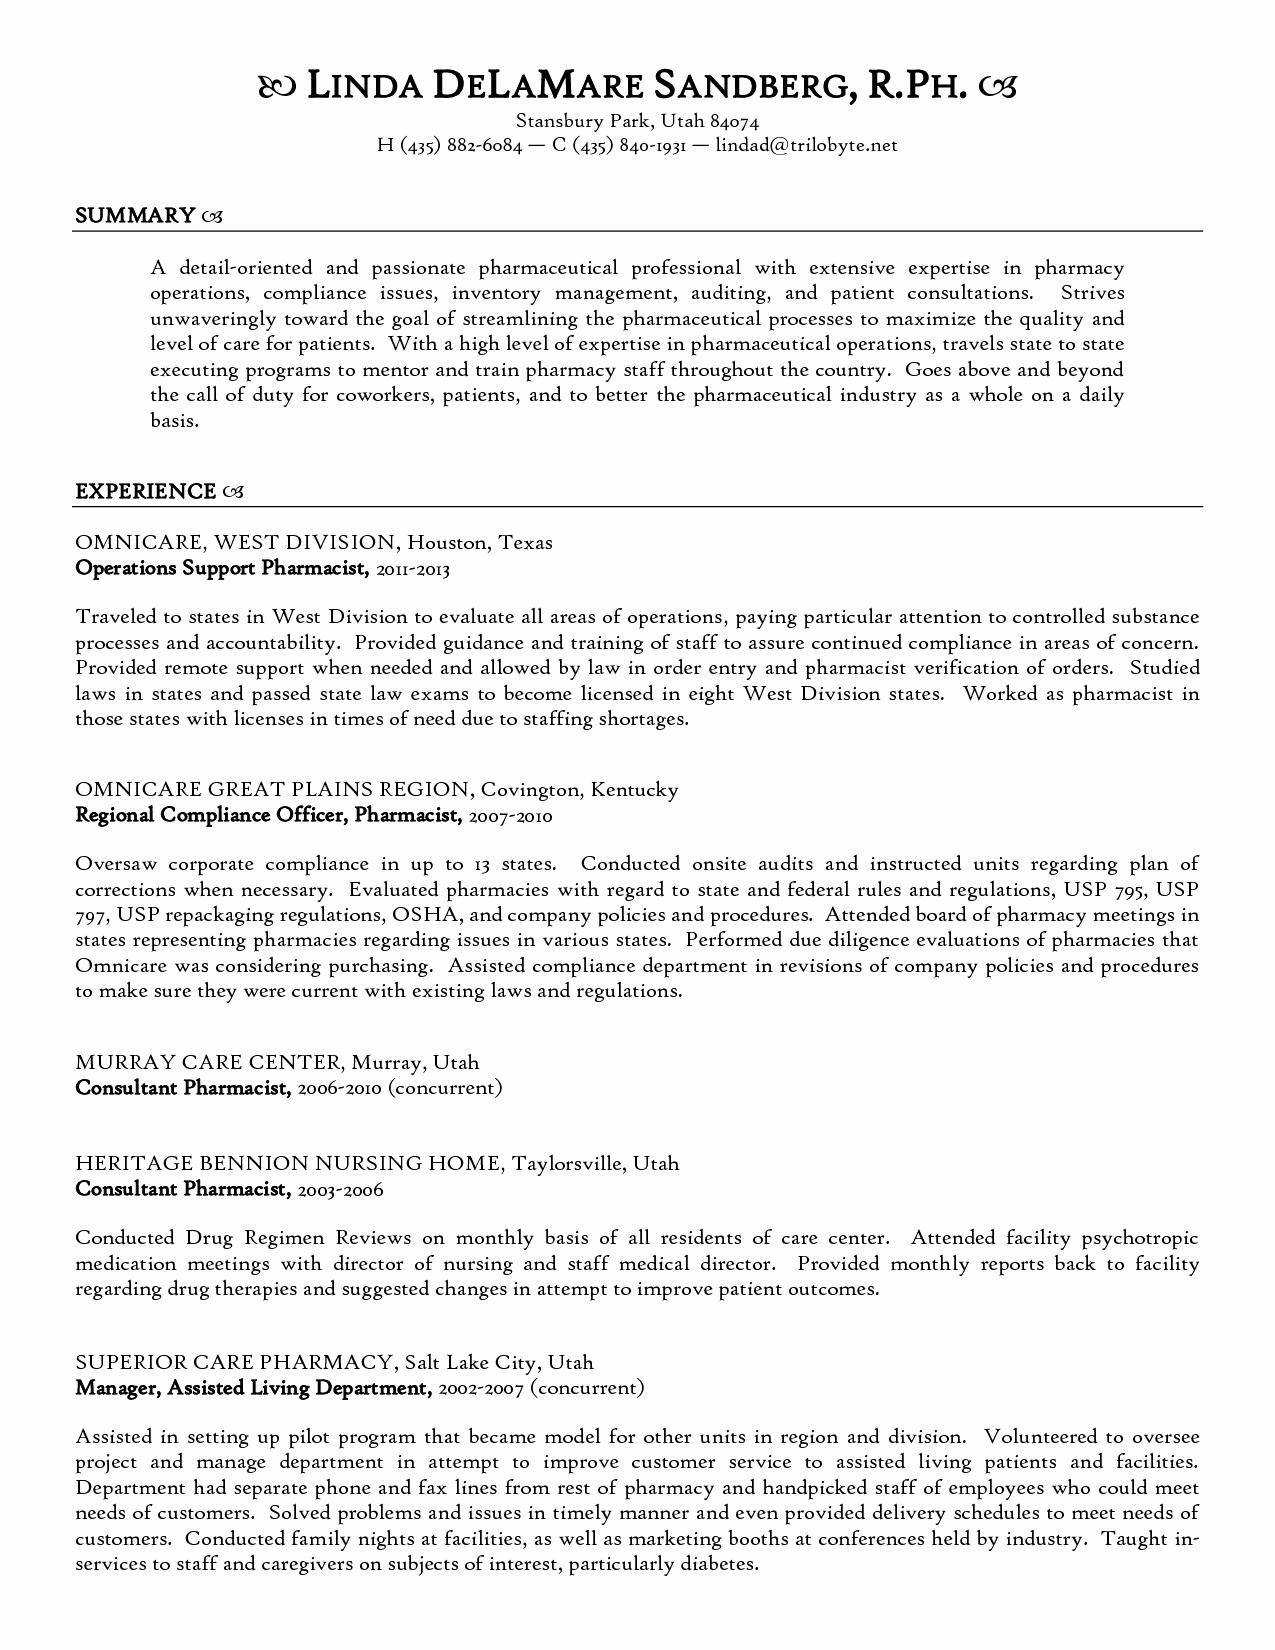 Tech Support Resume Template - 42 New Resume format for Experienced Technical Support Resume